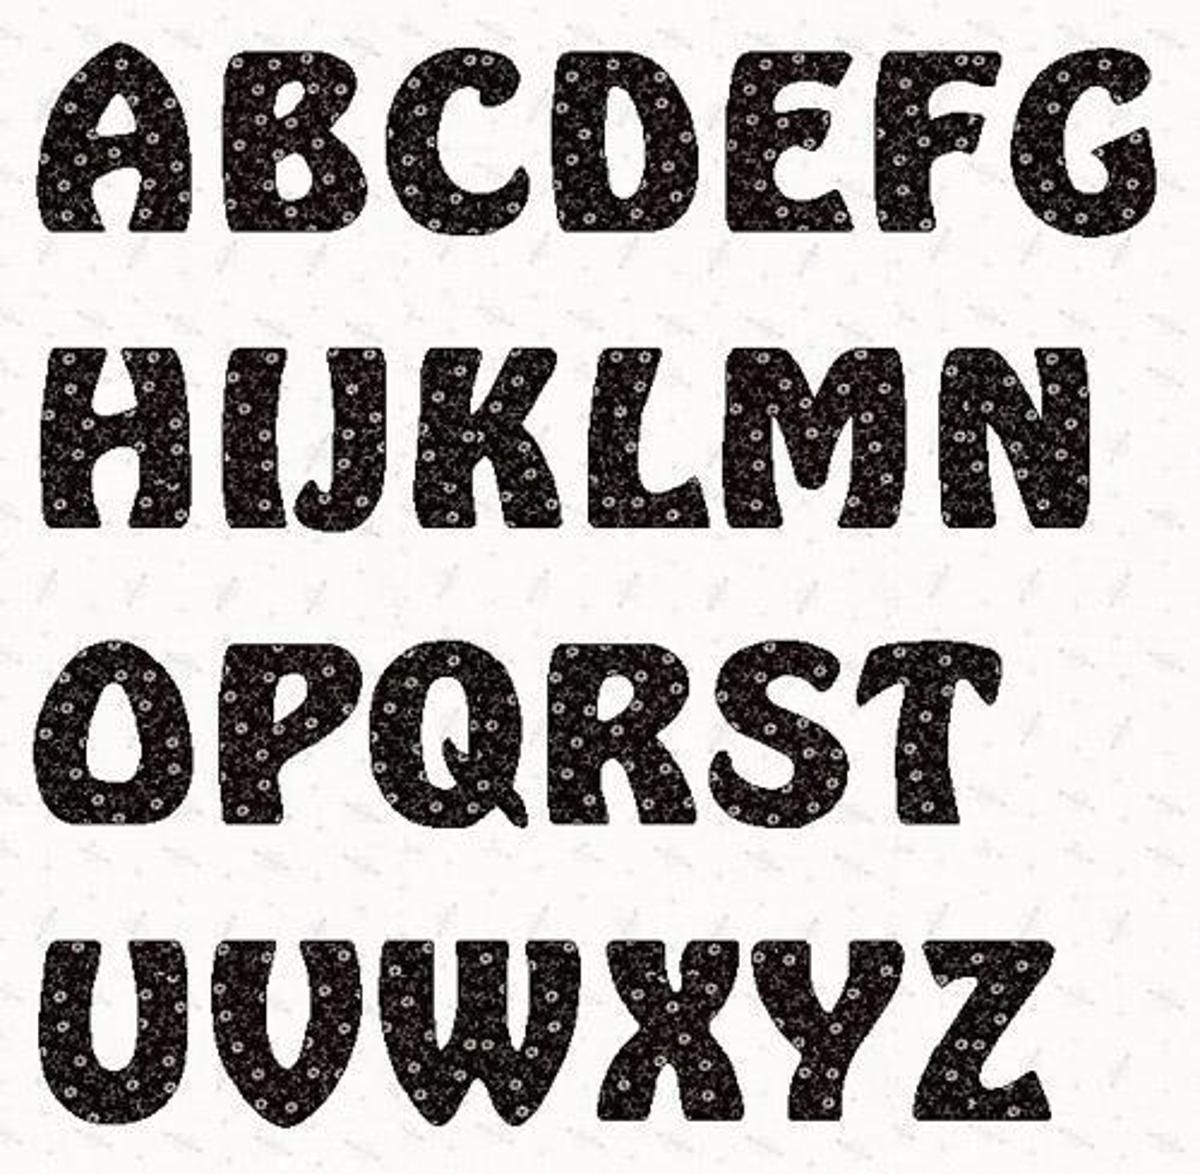 Alphabet Hobbit Font  Inch Template  Hobbit Fonts And Template